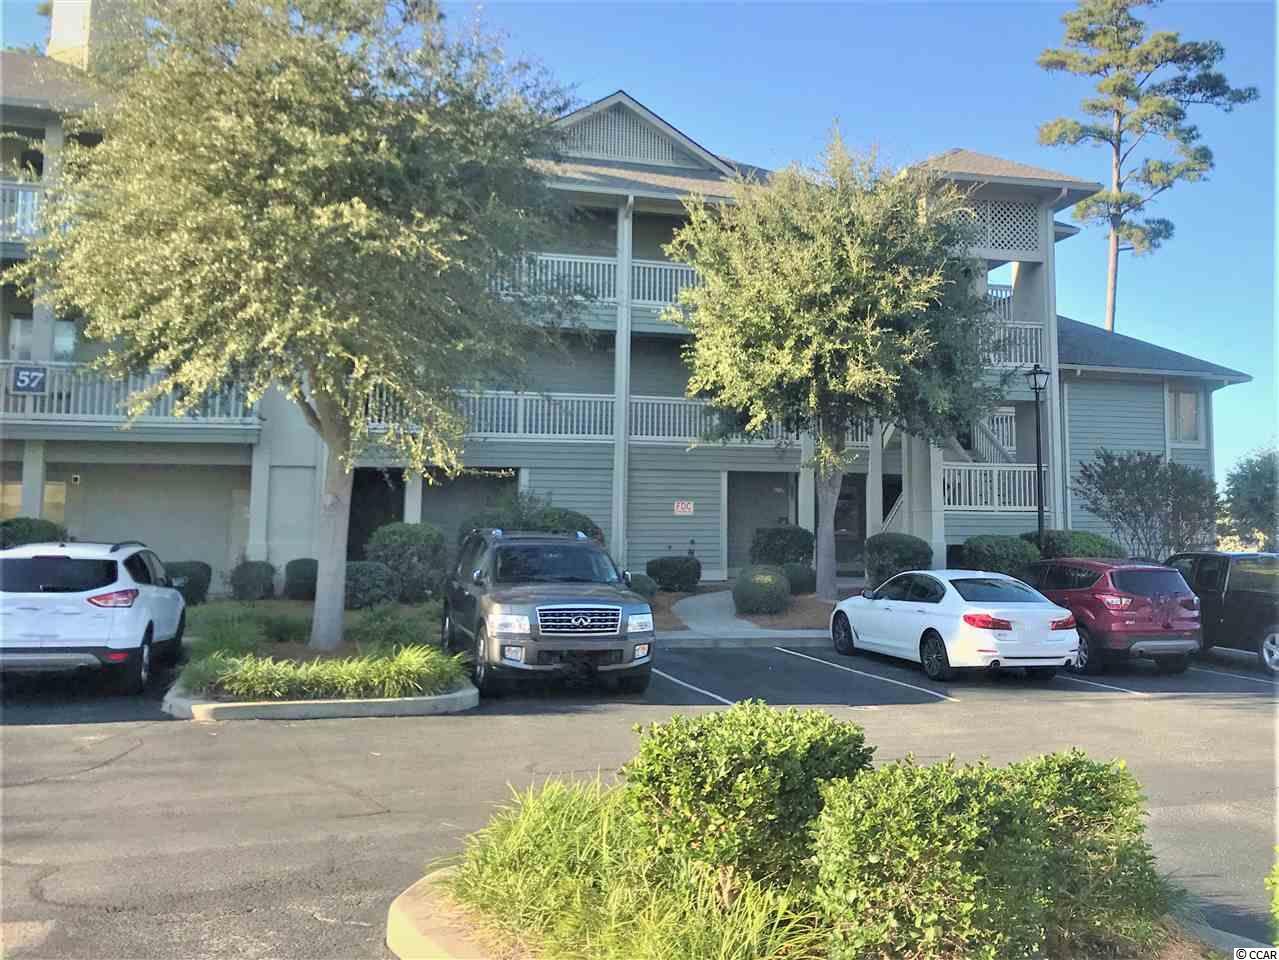 GOLF LOVERS, Don't miss the opportunity to own this beautiful spacious  excellent maintained, rare END, 1st floor, 3 bedroom, 3 bath Clubhouse Villas unit, located in the popular golfing community of Tidewater Plantation.   This 3 bedroom, 3 bath unit sports a stunning panoramic view of the 18th hole and natural beauty of the Marshlands.   A lovely wide foyer greets you upon entry opening to wide hallways adjoined by the kitchen, grand open living/dining space and bedrooms.  Enjoy stunning views from the spacious screened porch with access from the Living Room and Master Bedroom.  Tidewater community offers the beach cabana, pools, tennis courts, fitness center and much more!  It is a private gated community with 24-hour manned security.  A golfer's haven and beach lovers paradise!  DON't LET THIS ONE SLIP AWAY!